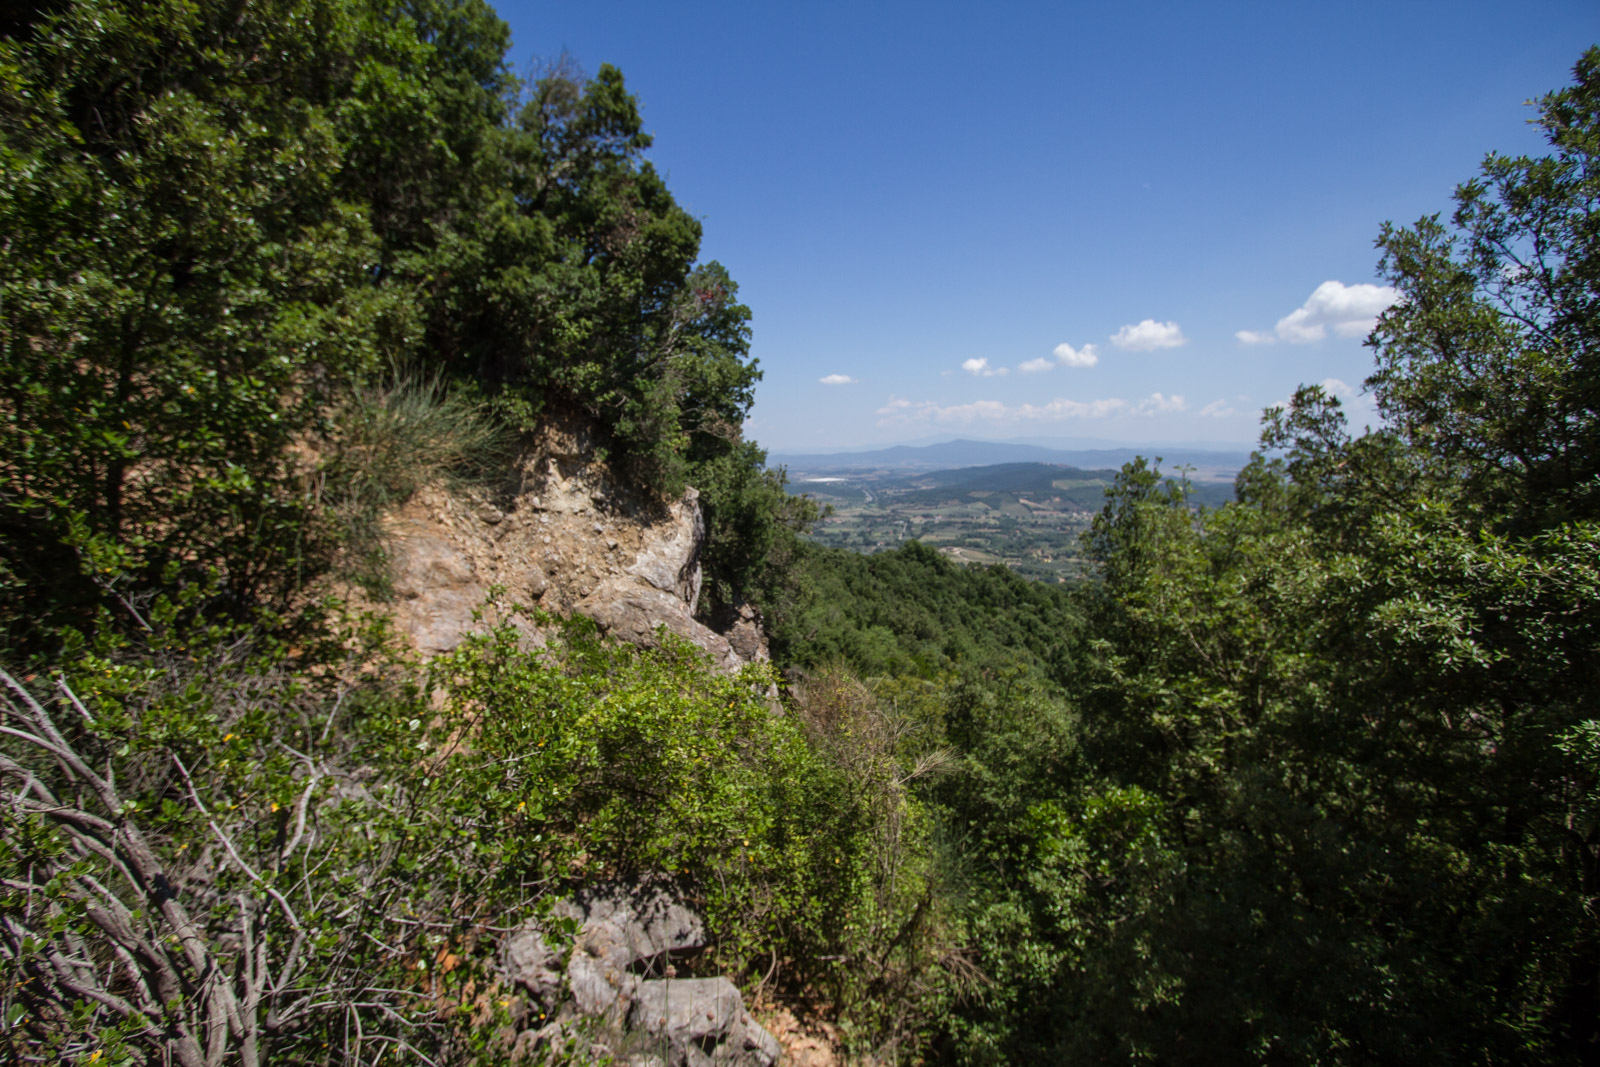 Looking back across the Maremma to Ravi and the Amiata, the views are stunning, isolated but connected.